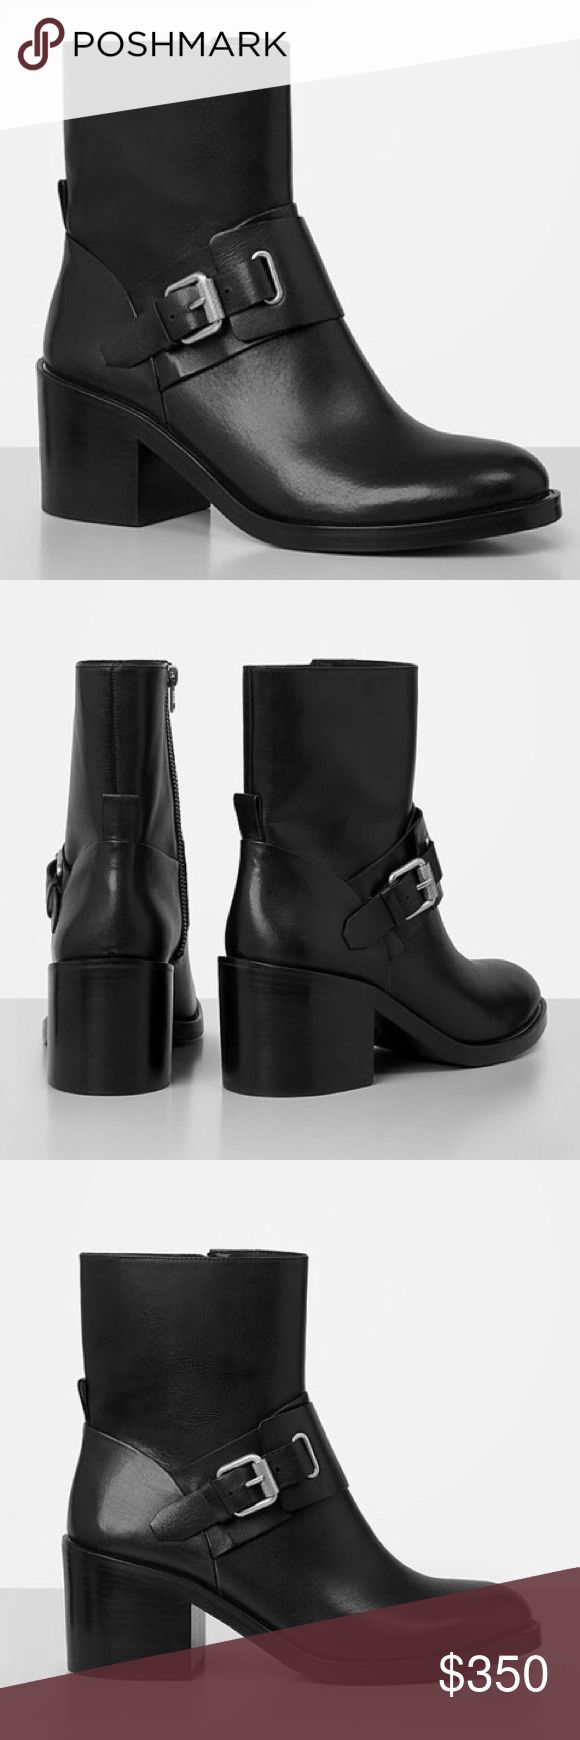 """ALLSAINTS Balenciaga """"Minkka"""" Moto Ankle Booties The Minkka Boot will work all-year round! Designed with Balenciaga's motorcycle biker vibe in mind, this beauty is crafted from smooth, genuine calfskin leather and finished with a silver-toned roller buckle fastening in a high ankle silhouette. 2.75"""" block heel. Made in Italy. Overall EXCELLENT condition, worn once to try on around house. Comes with original box. All Saints Shoes Combat & Moto Boots"""